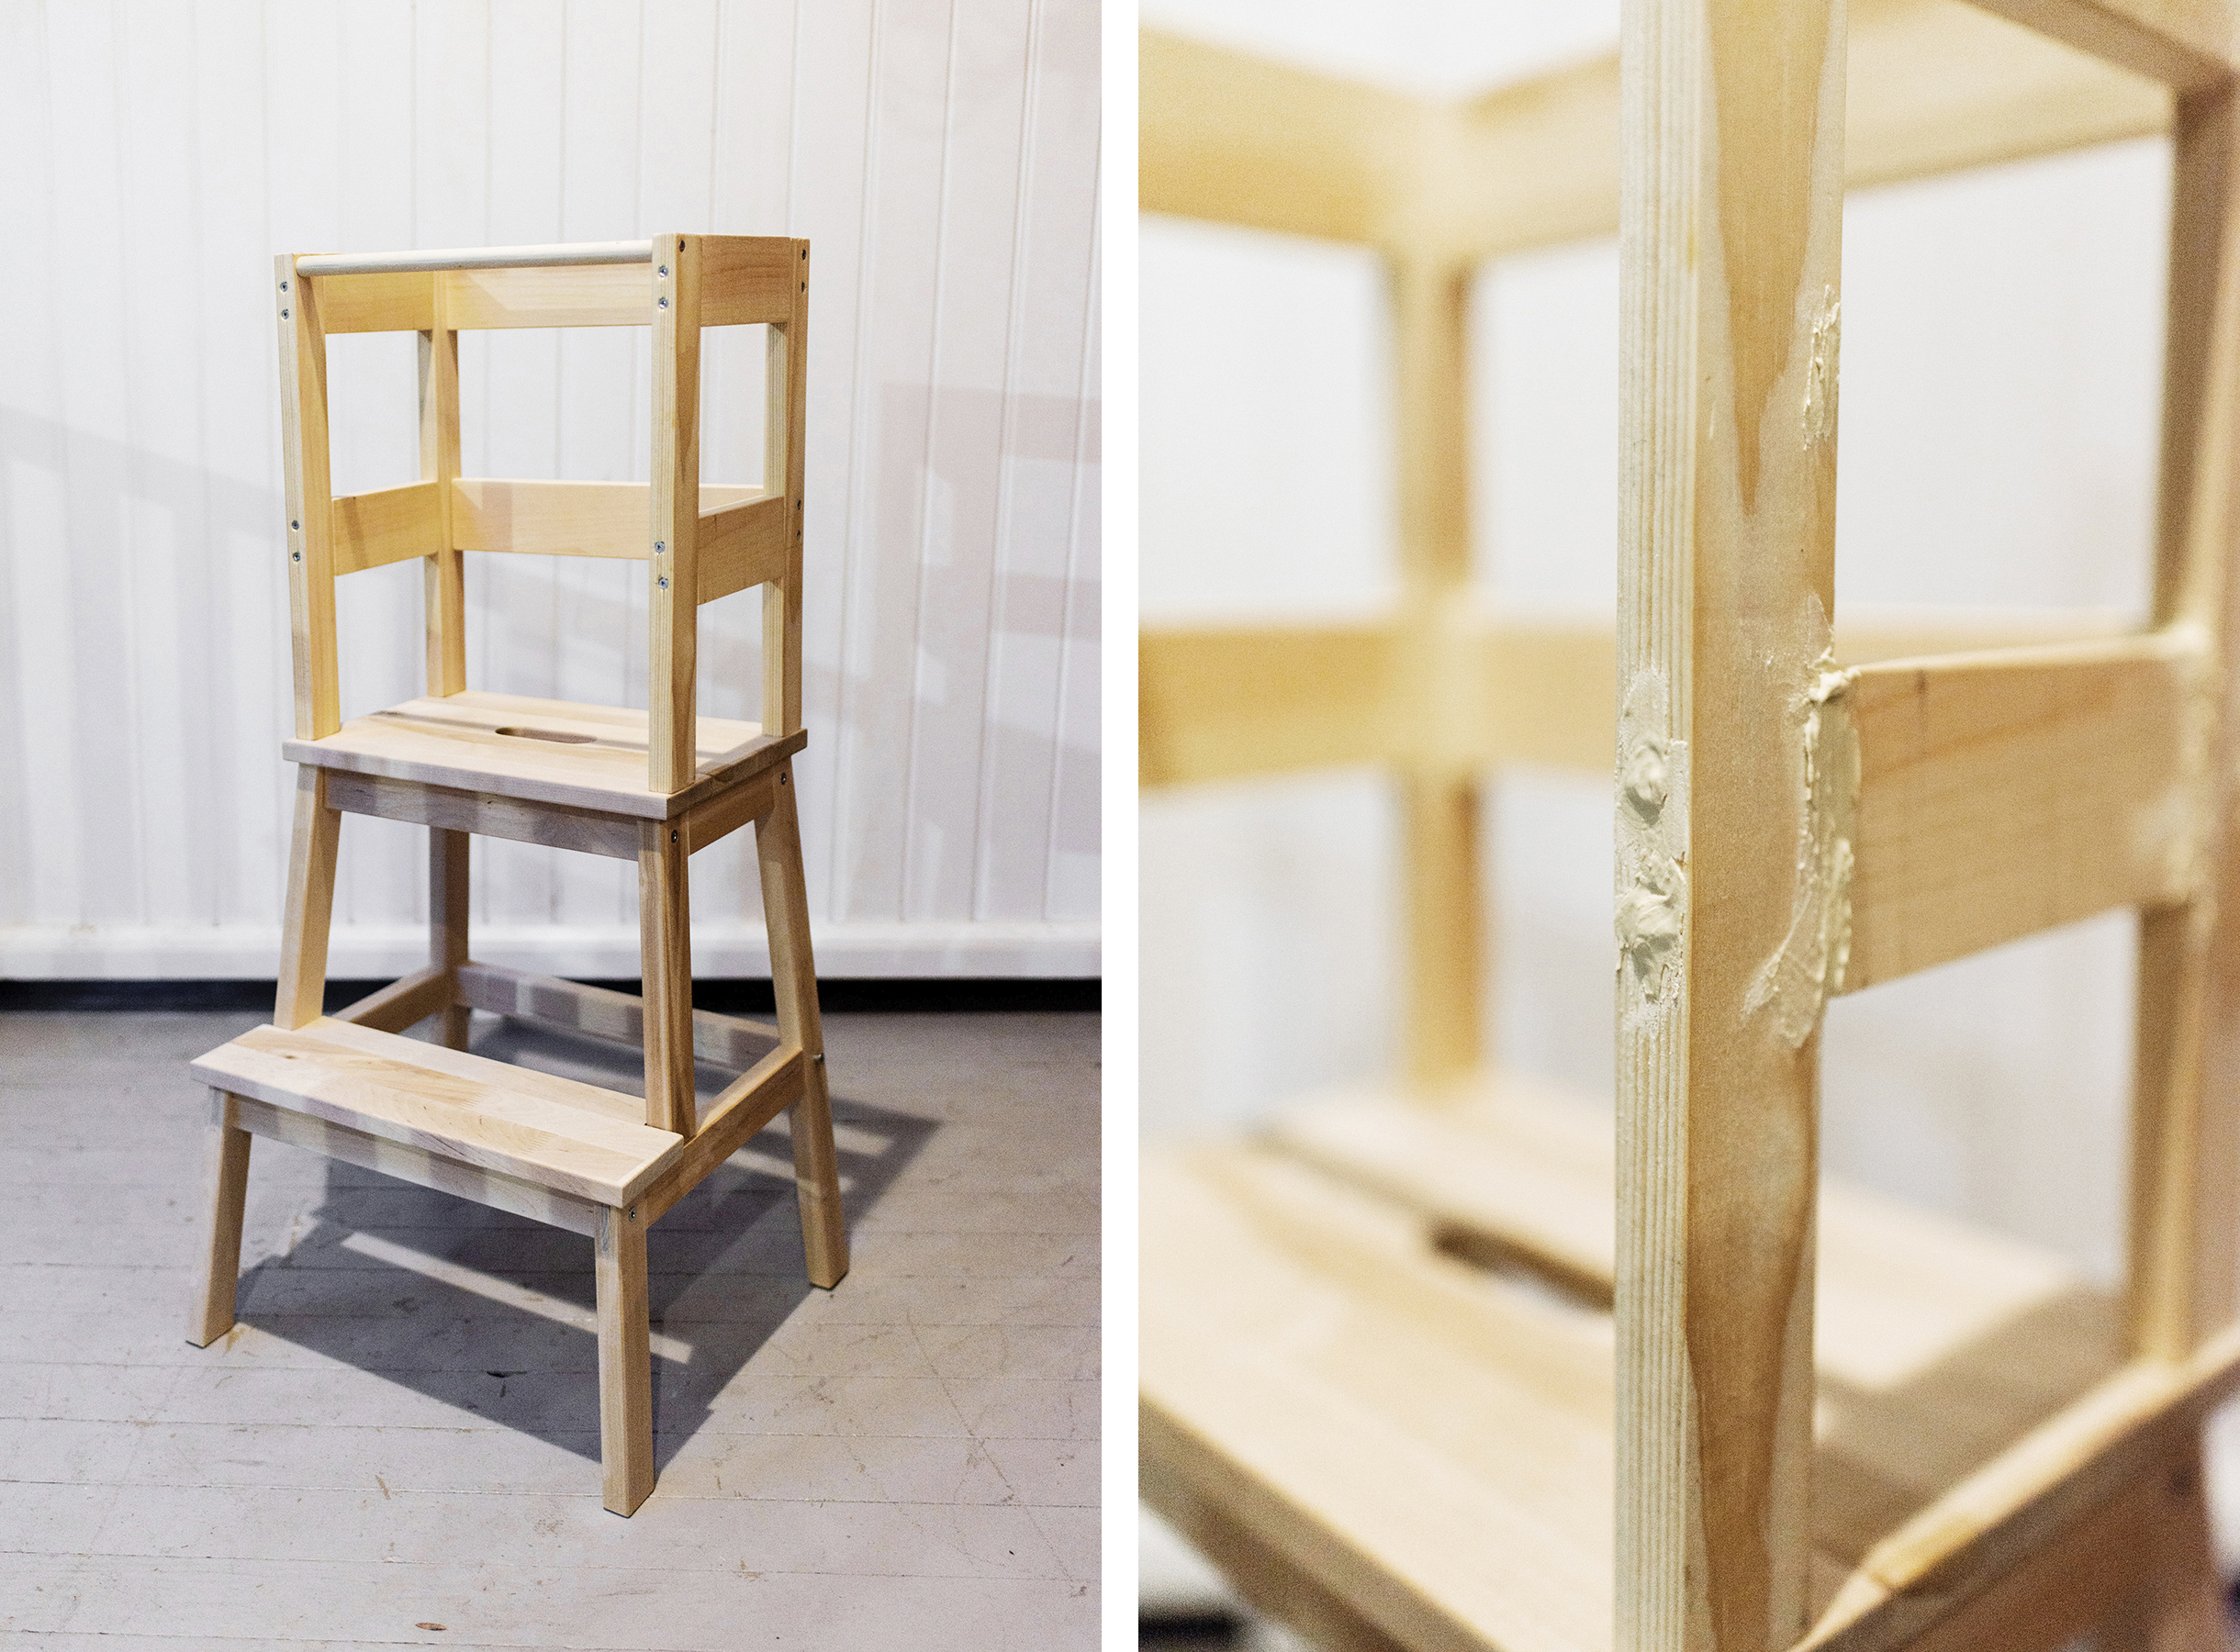 ikea hack toddler learning tower using a bekv m stool tutorial